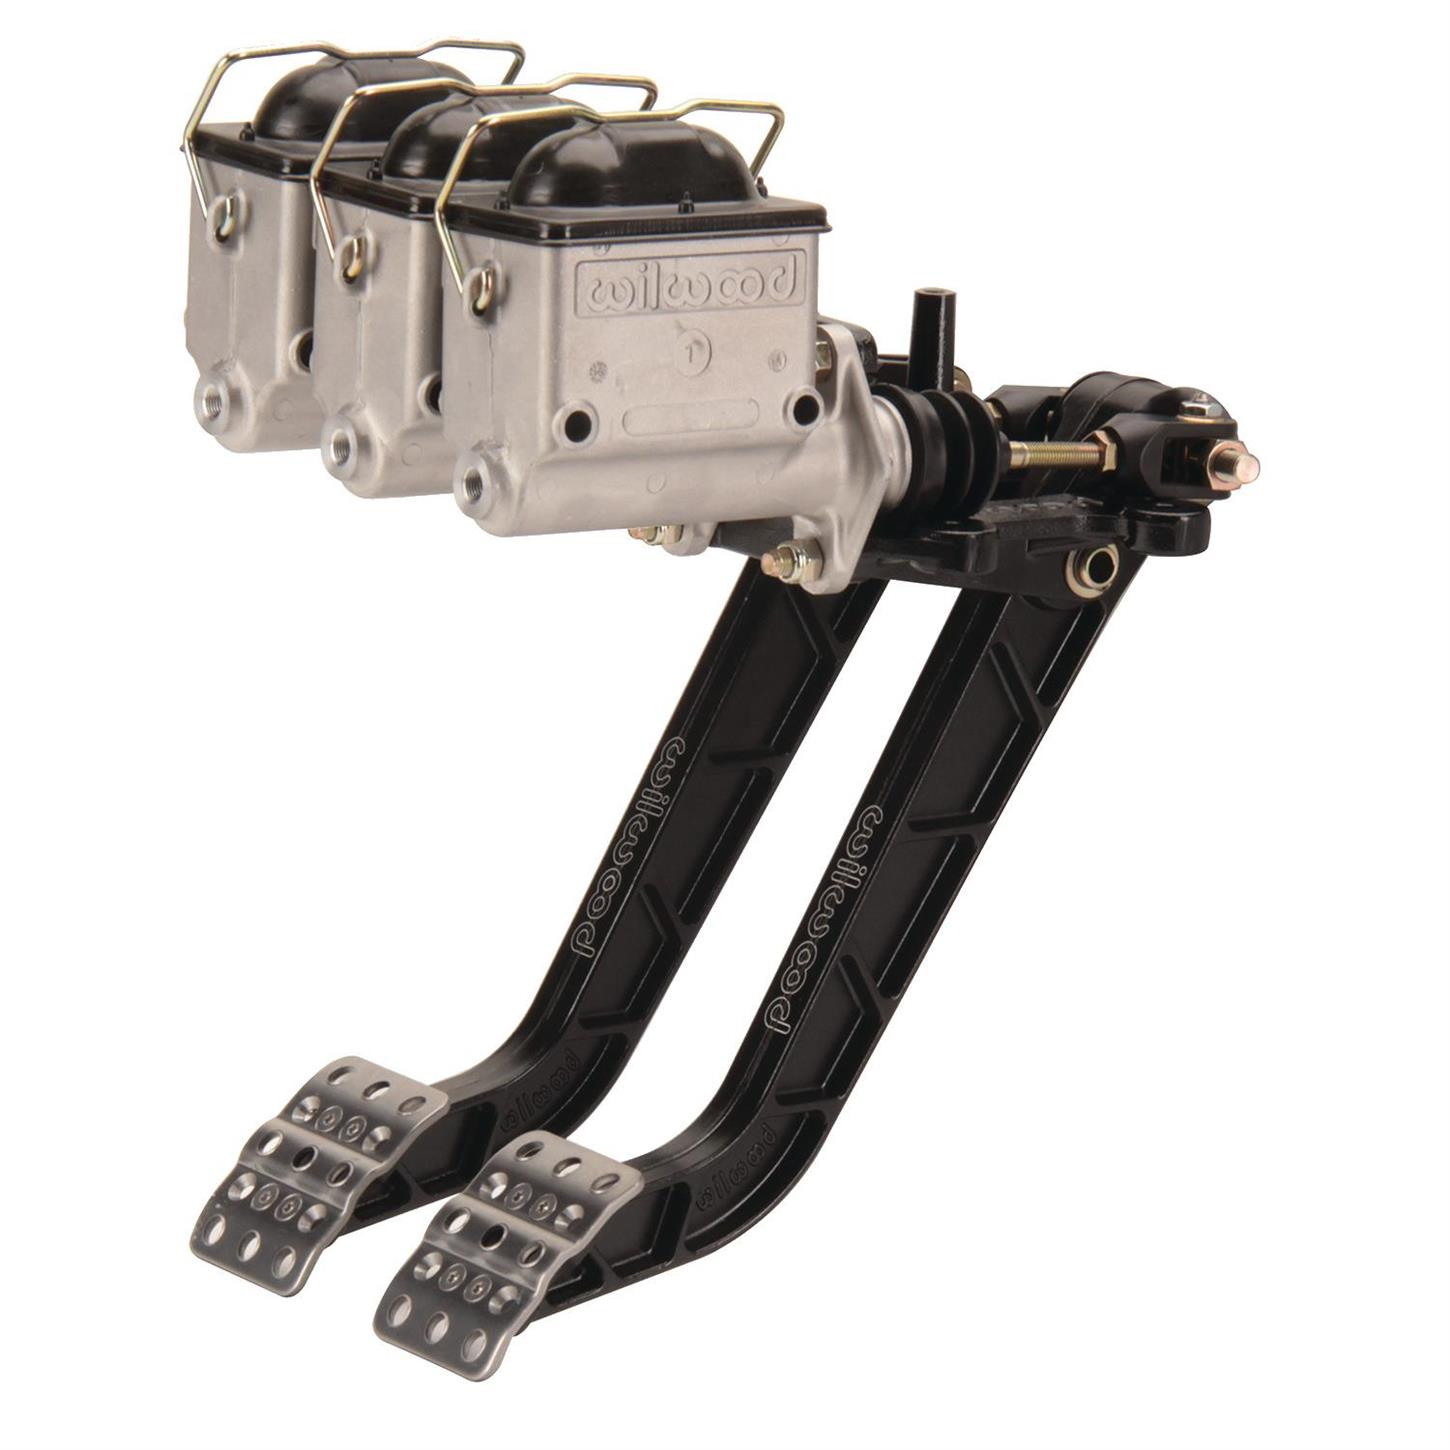 1 Ratio Reverse Mount Dual Master Cylinder Pedals 6.25